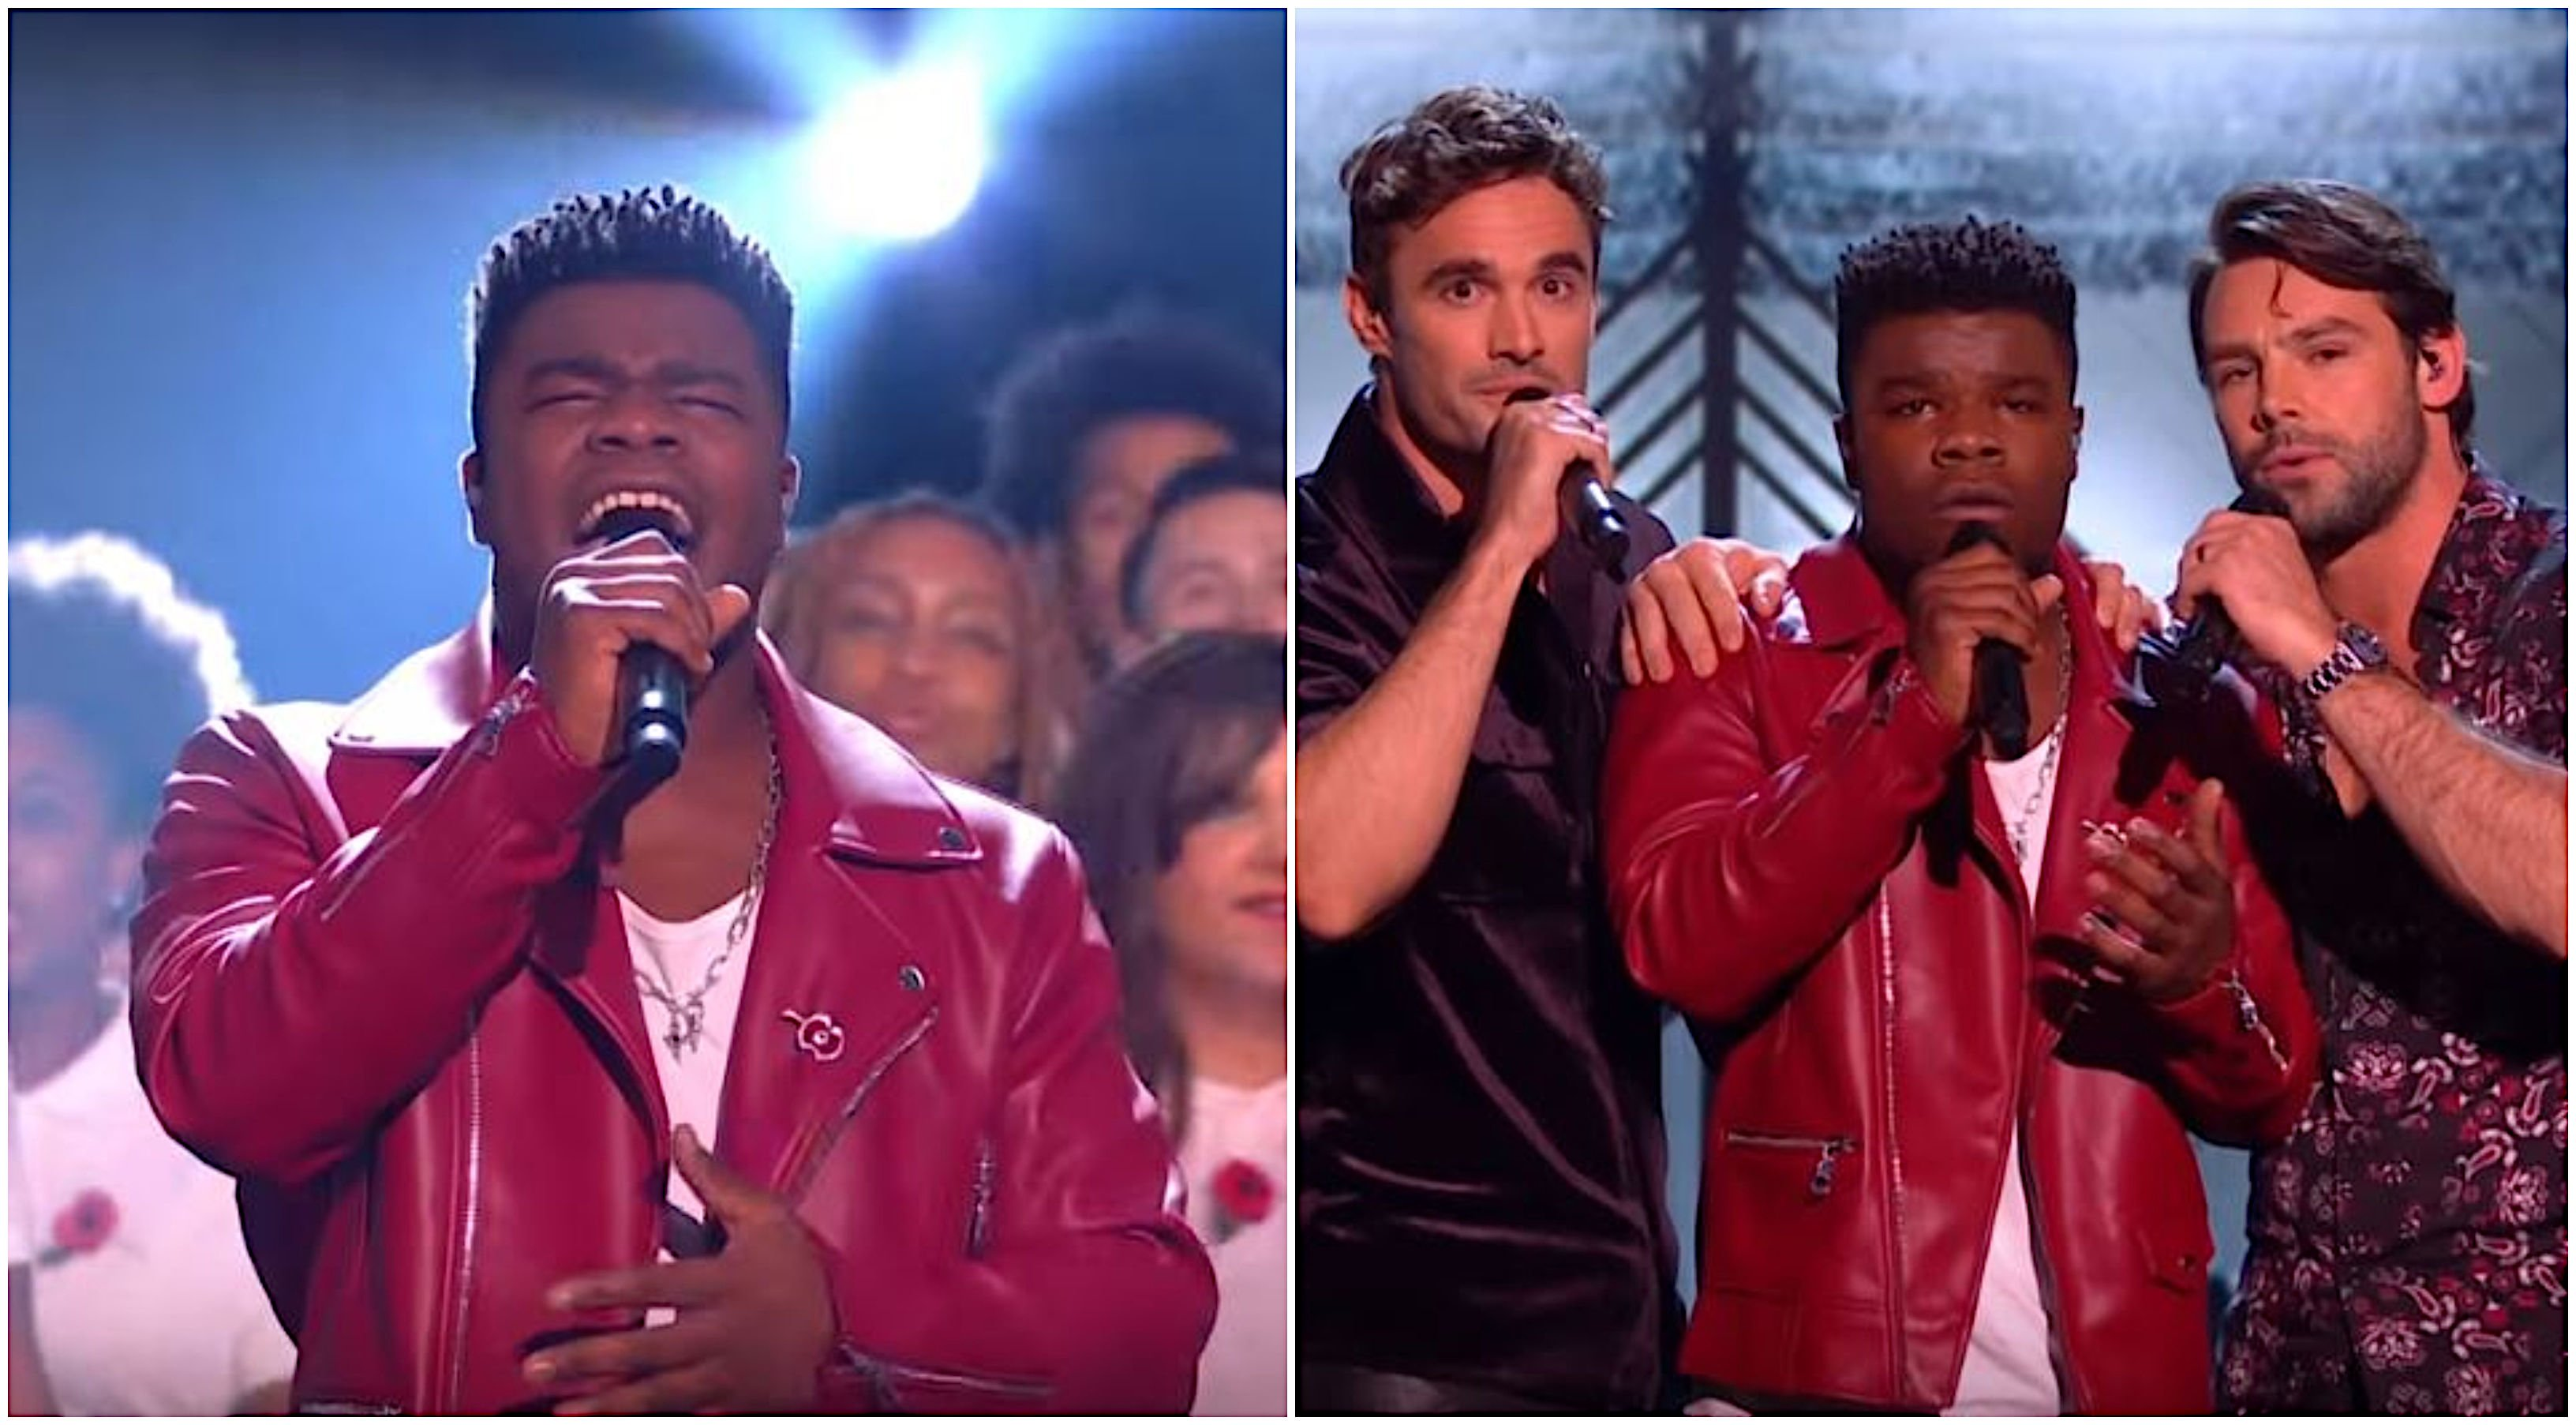 Ben Foden needs a HIA after performing 'Sweet Chariot' monstrosity on X Factor